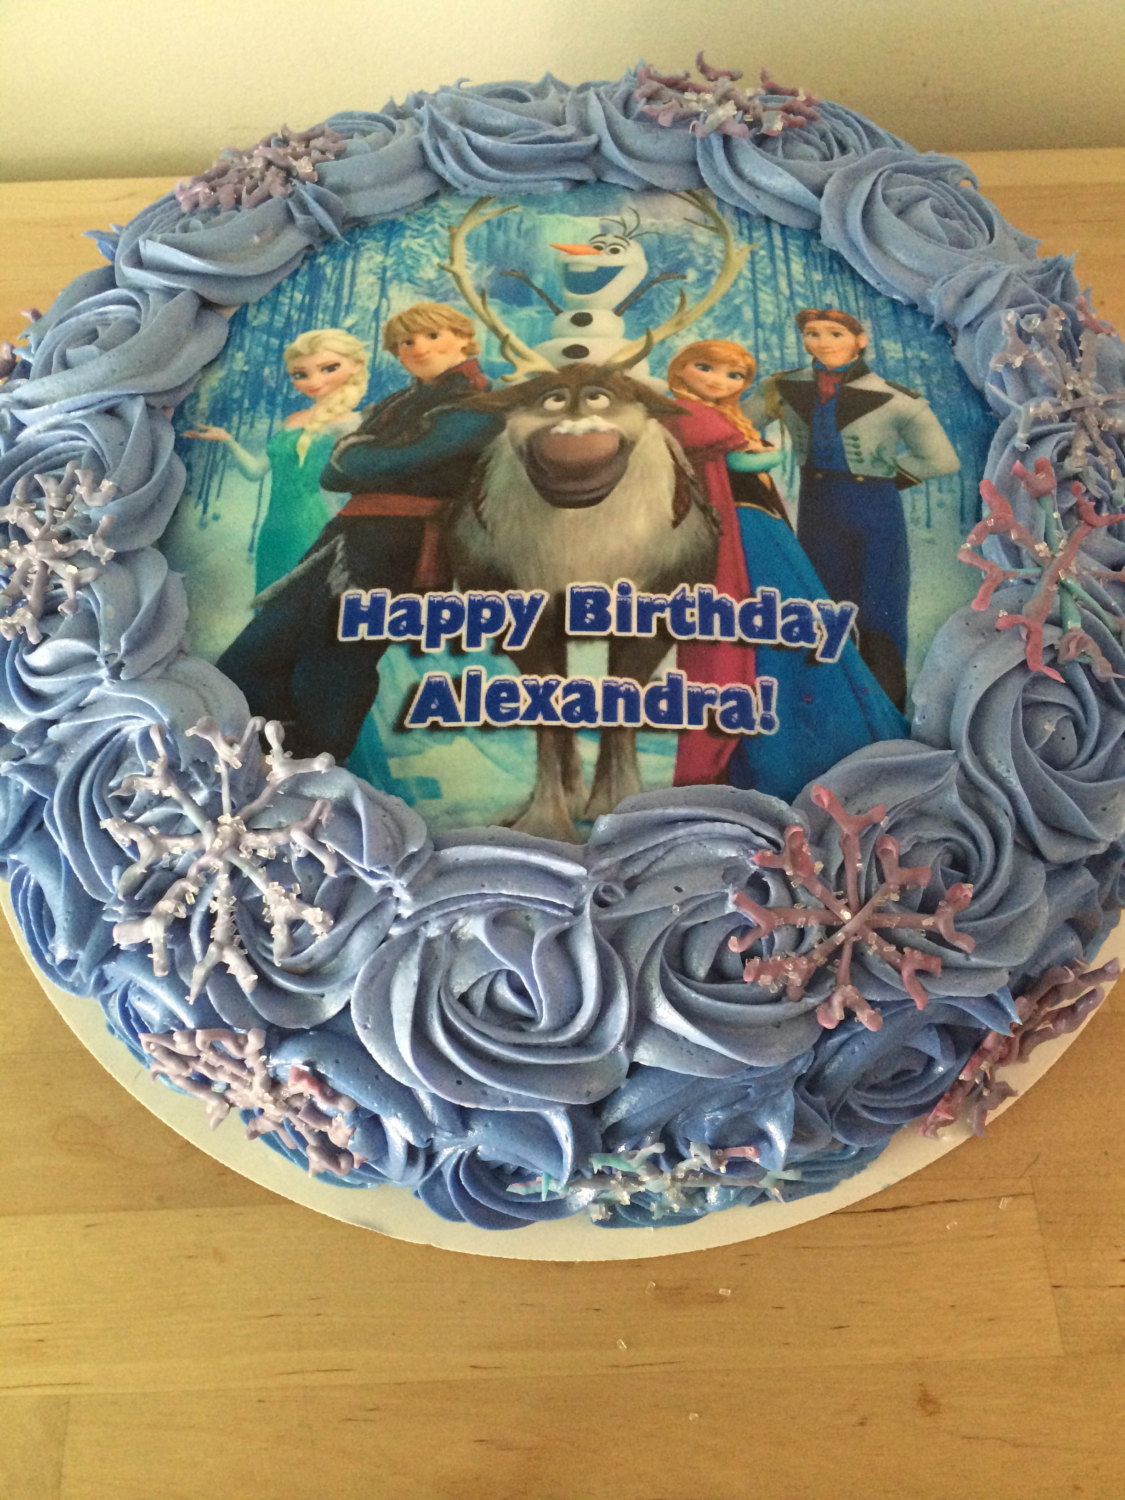 Excellent Disneys Frozen Cake Tops Sugar Paper Tops And 50 Similar Items Funny Birthday Cards Online Alyptdamsfinfo